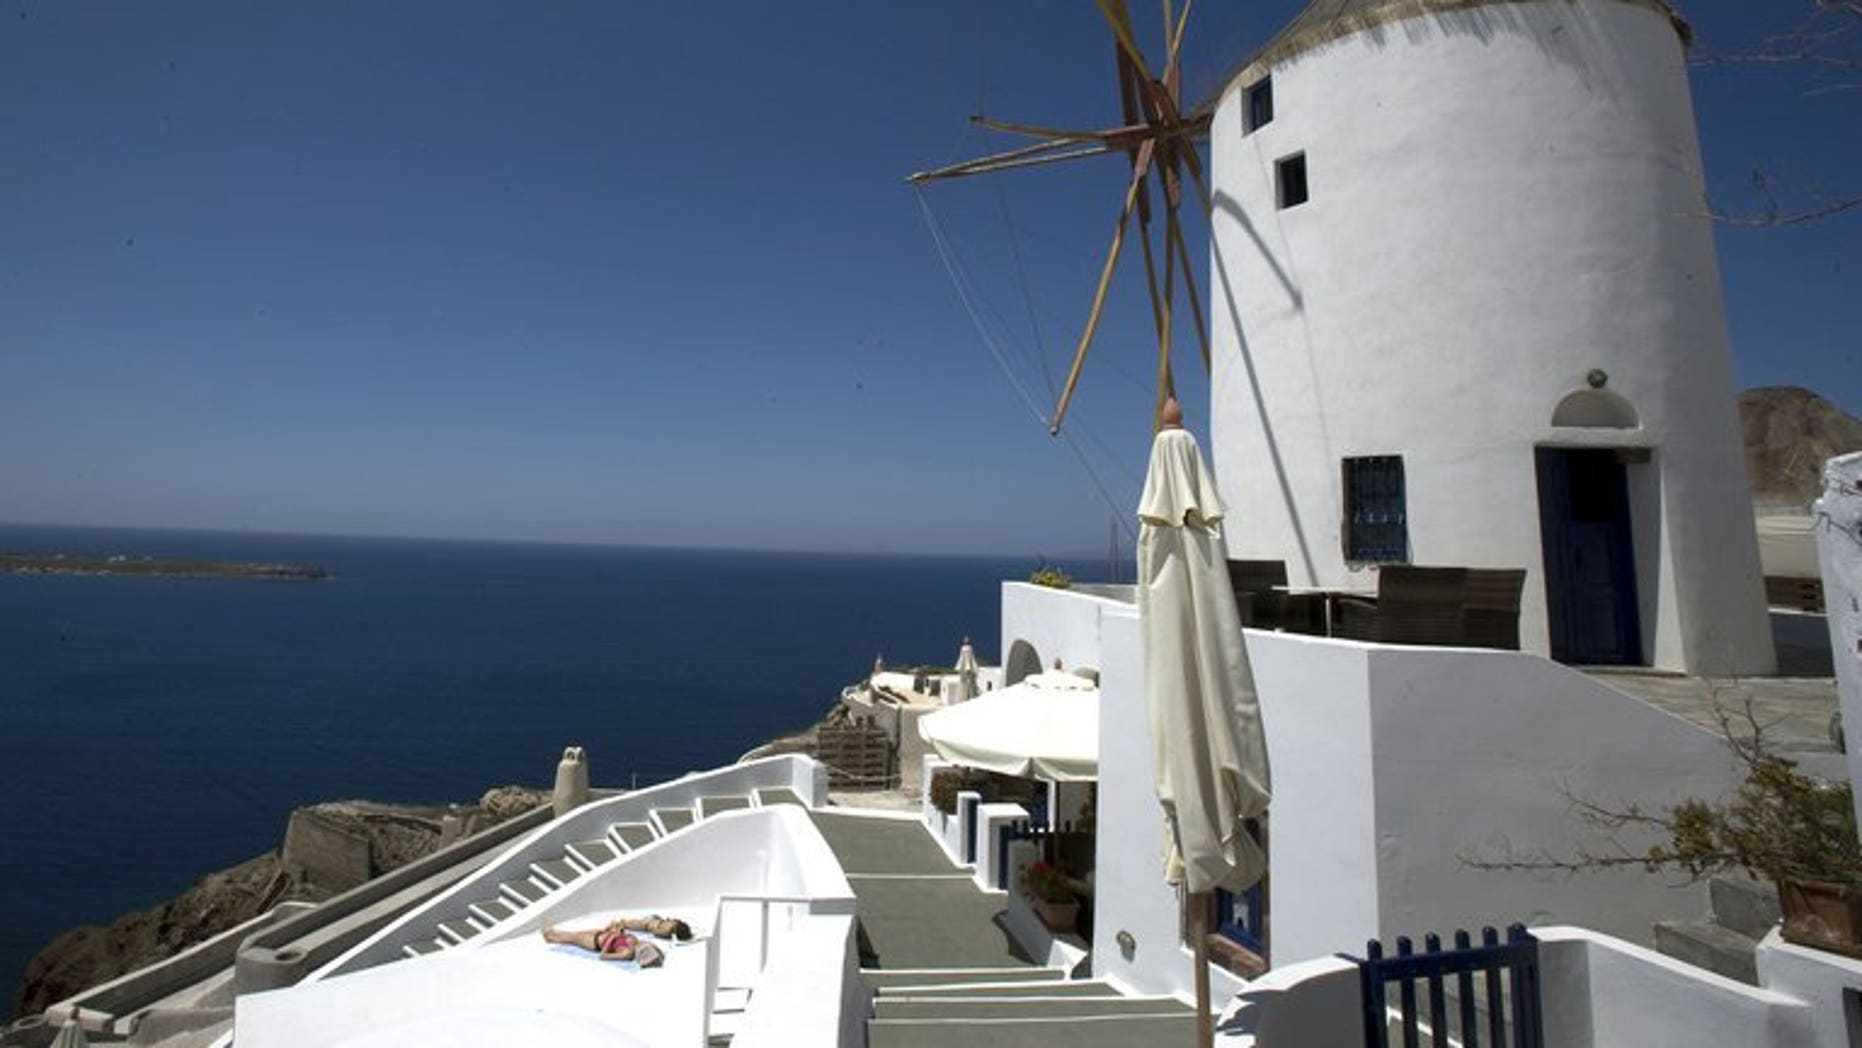 A photo taken on April 24, 2008 shows tourists sunbathing on the Greek island of Santorini. The Greek island of Santorini -- one of the country's premier travel destinations -- has been hit with a sweeping power shortage after a fire at the island's main electricity plant.